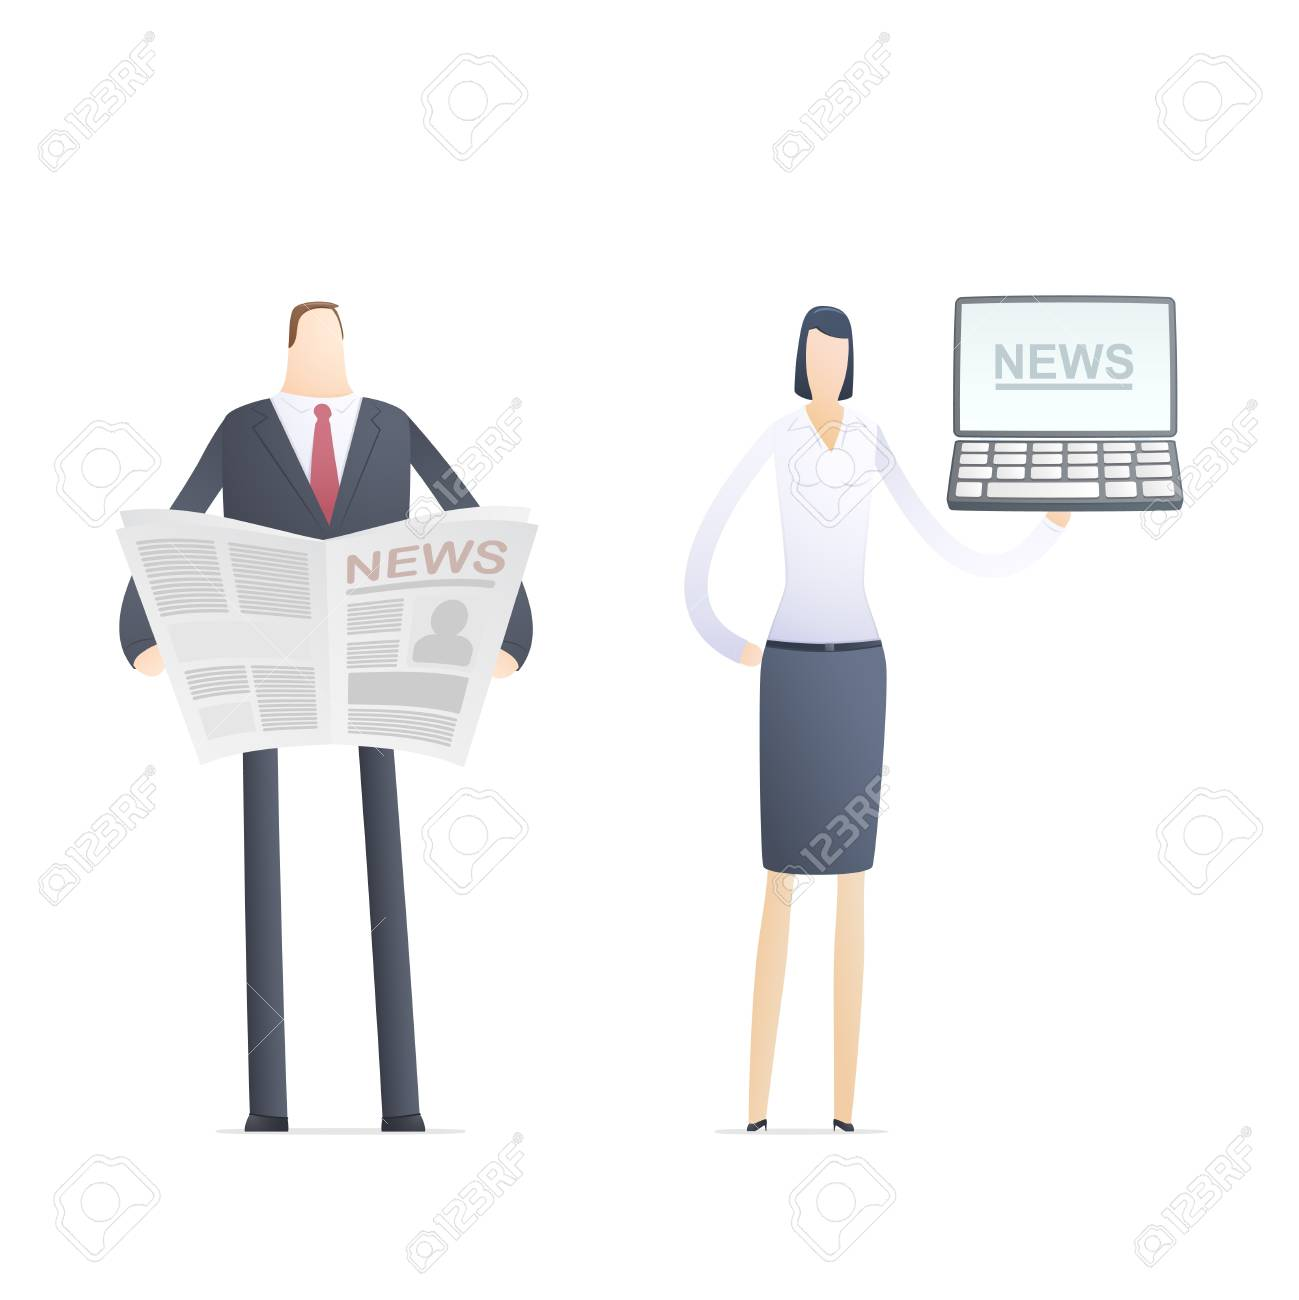 news in the paper and on the computer Stock Vector - 17580315